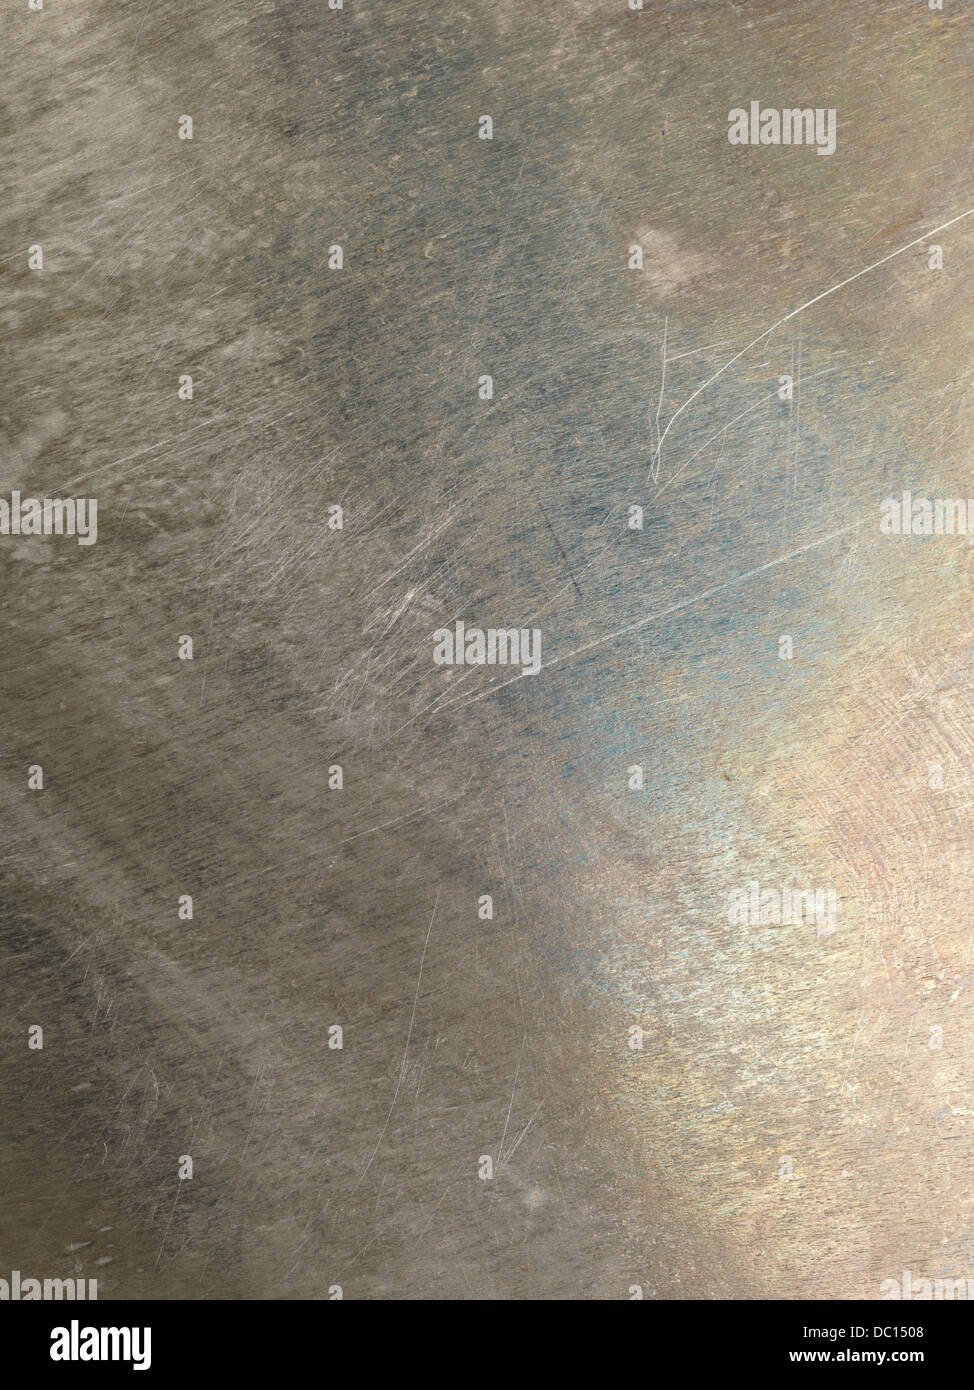 Oxidized scratched grungy shiny metal texture background - Stock Image